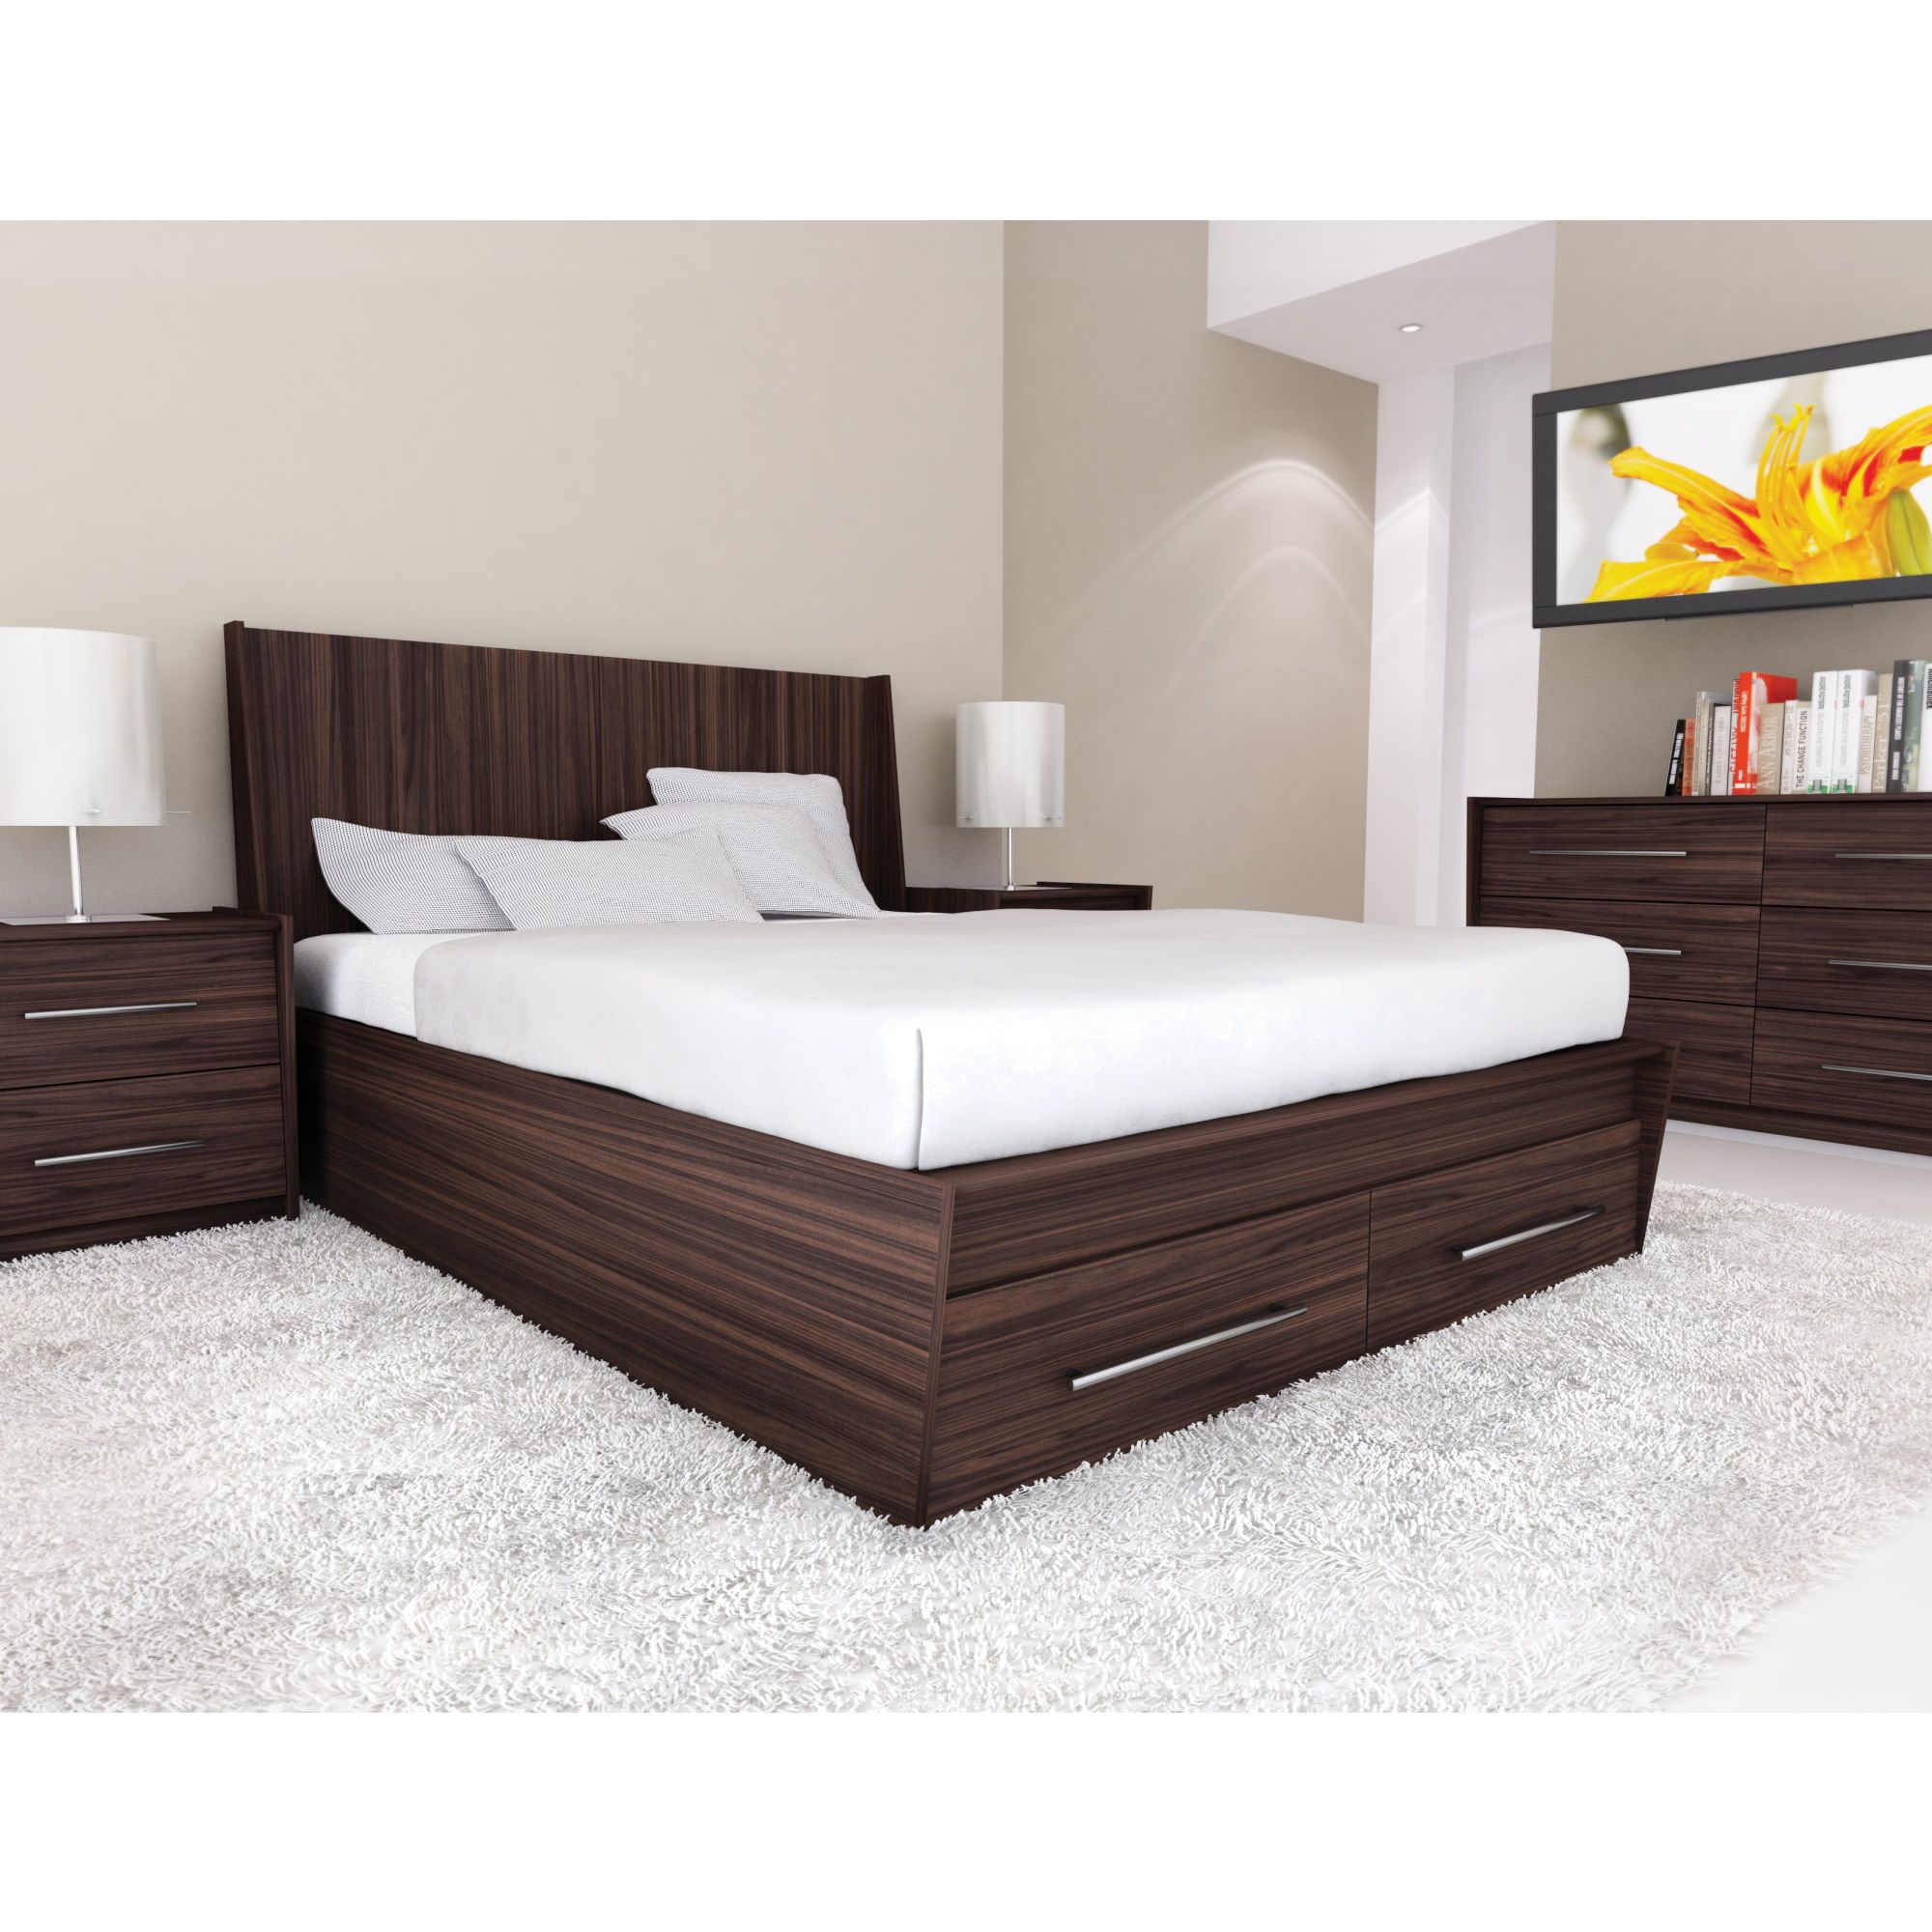 Bed designs for your comfortable bedroom interior design for Gourmet furniture bed design